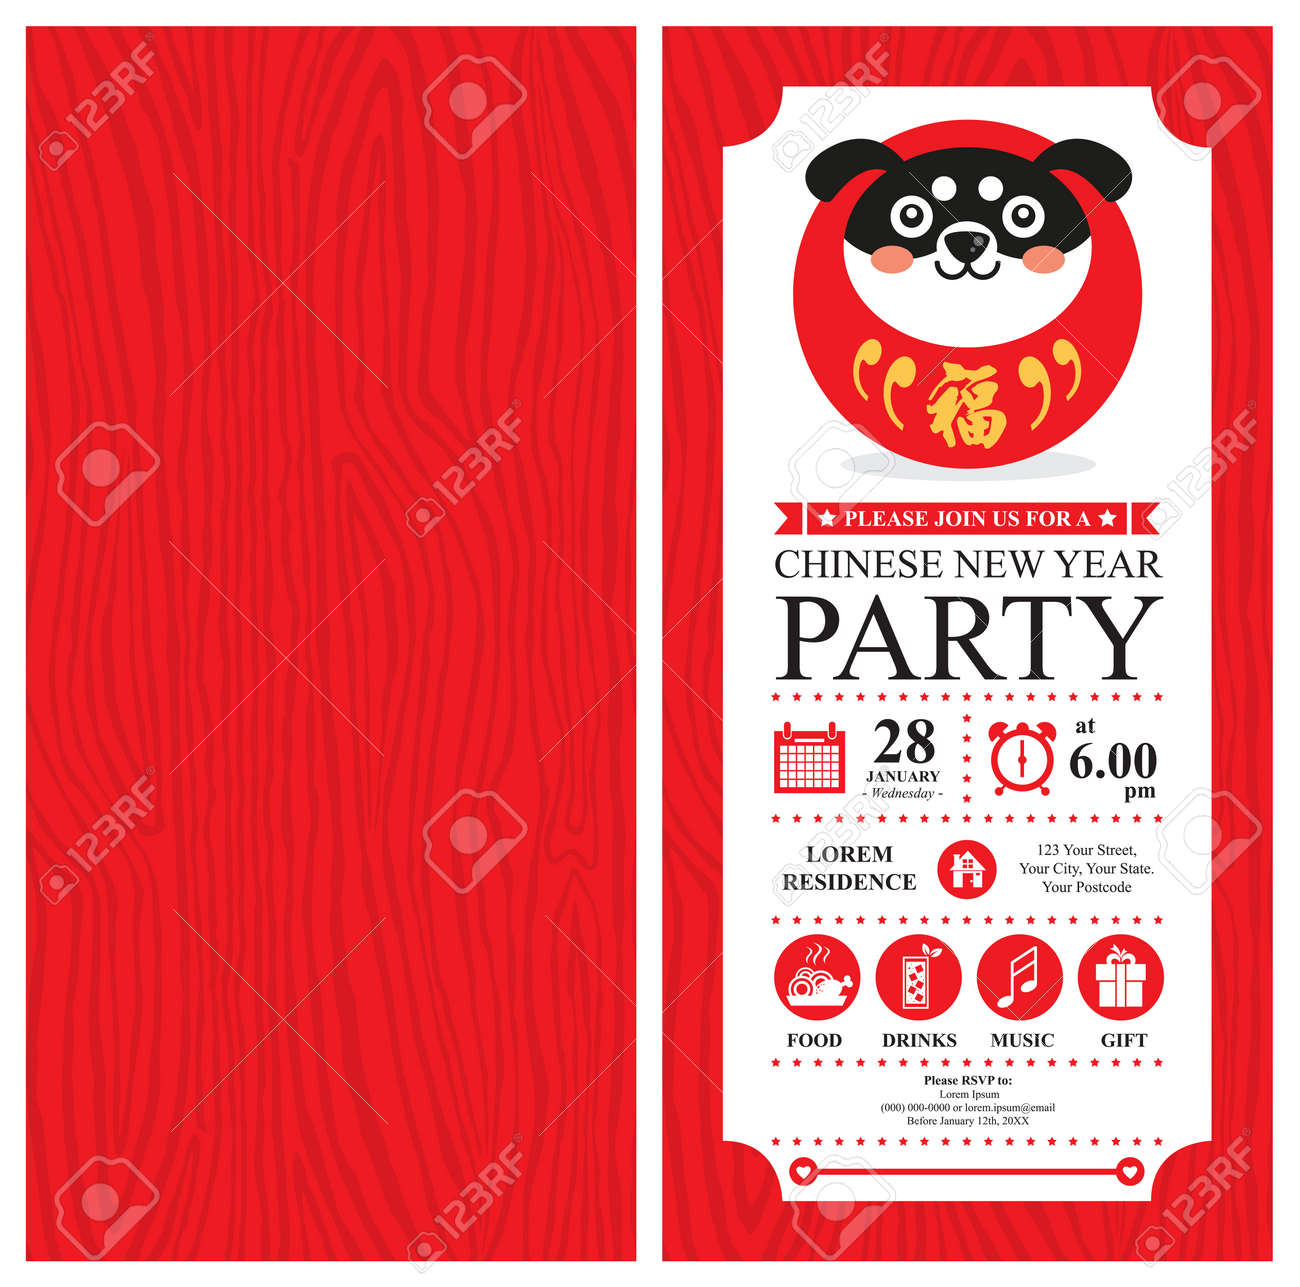 Chinese New Year Invitation Card Design Vector